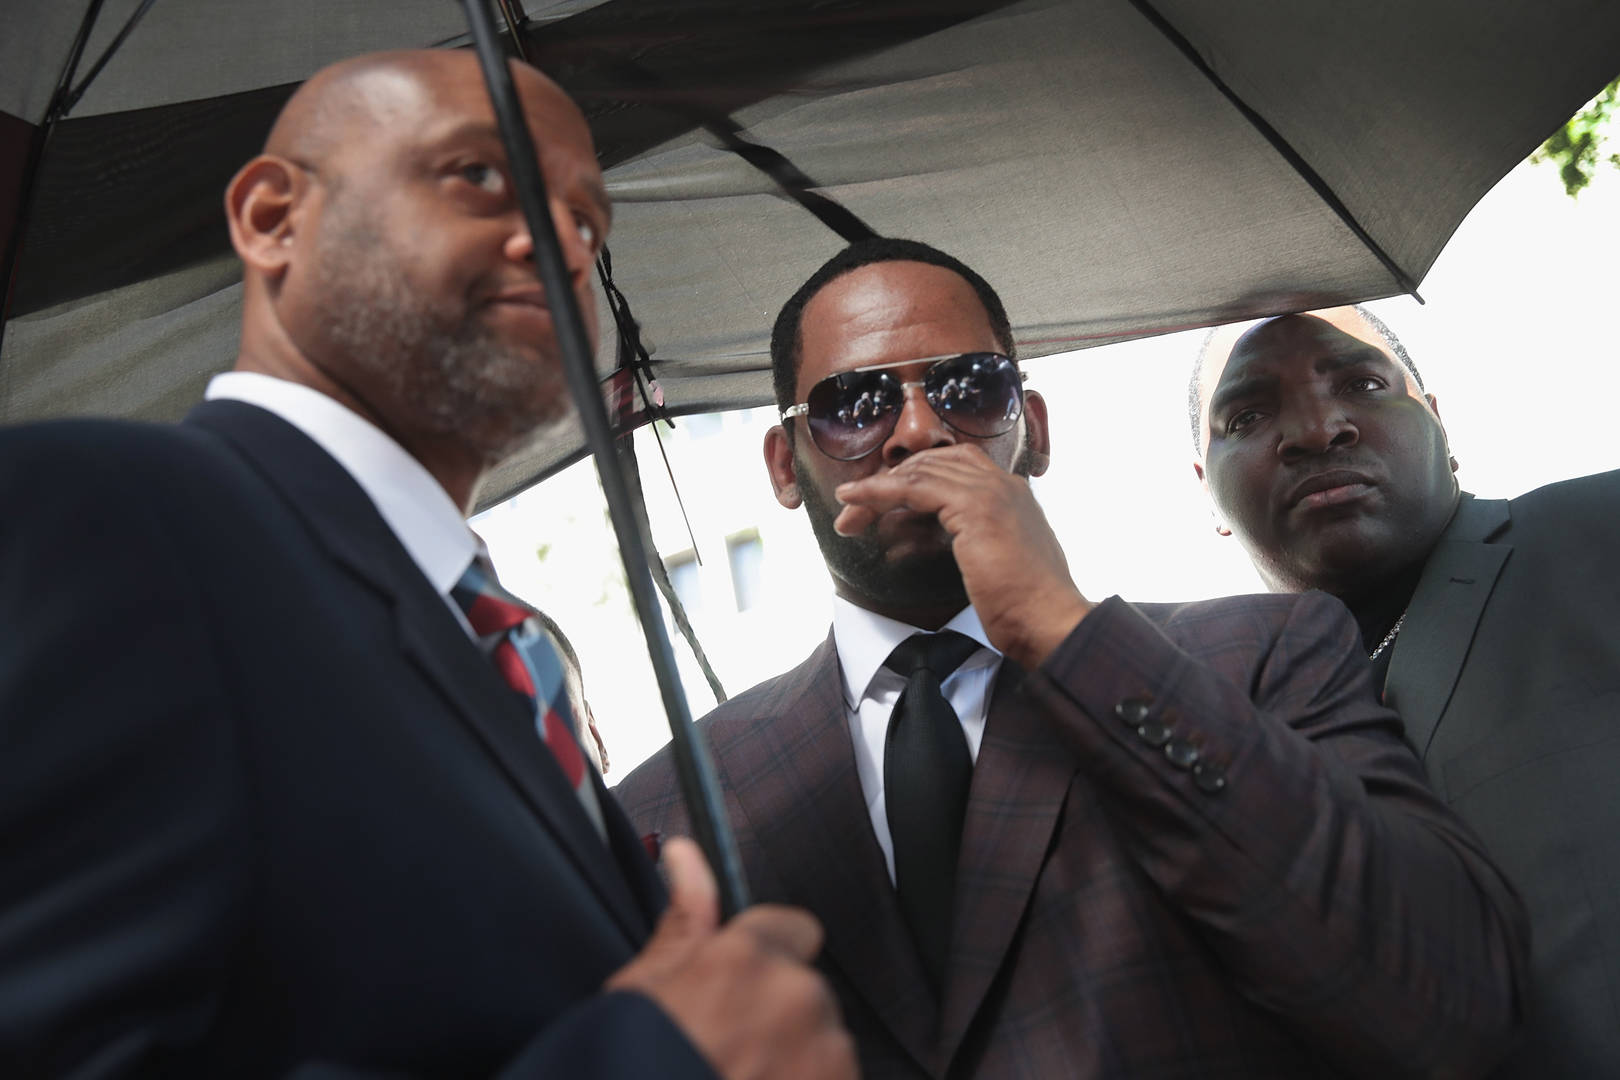 R. Kelly accusers threatened Donnell Russell Michael Williams Richard Arline Jr. charged